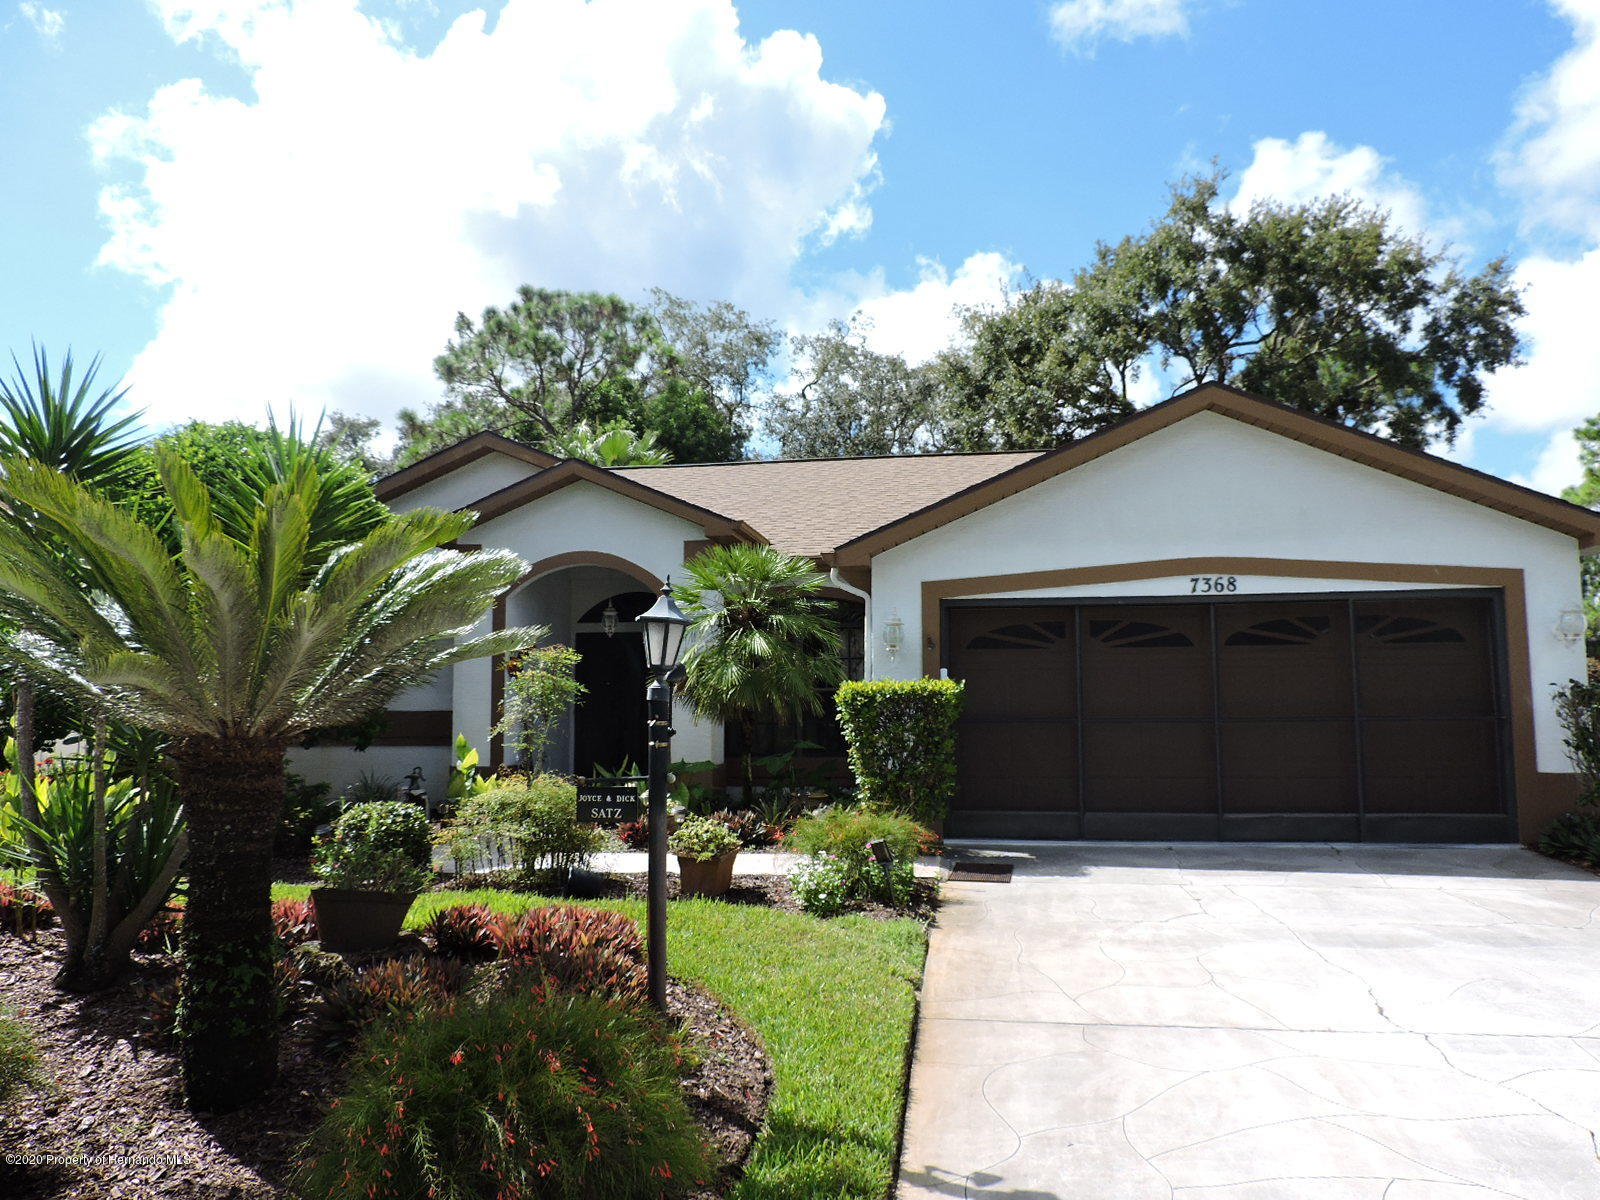 Details for 7368 Clearmeadow Drive, Spring Hill, FL 34606